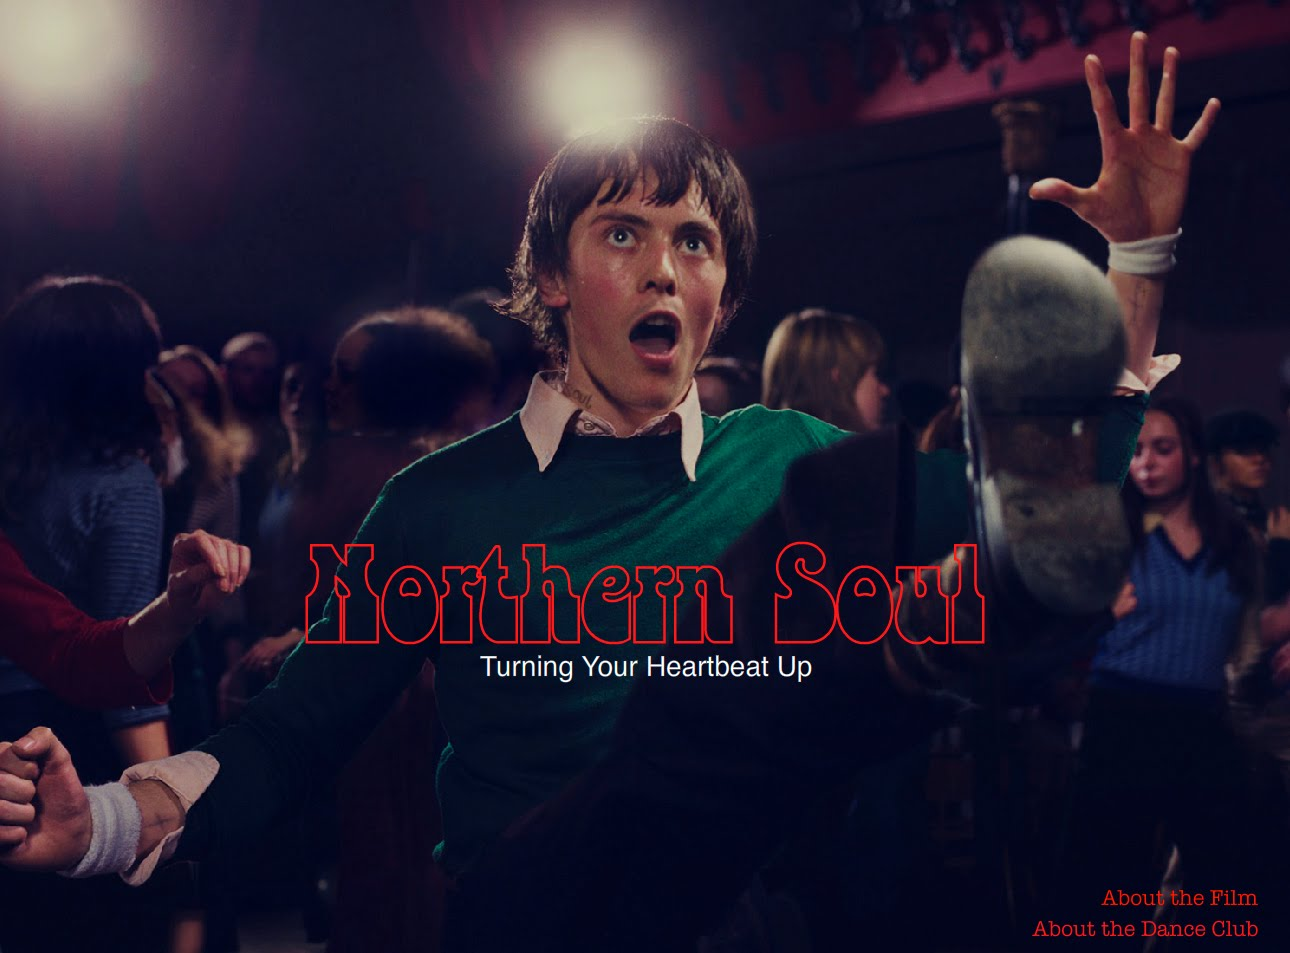 Northern-Soul-The-Film-1-1mmej3j